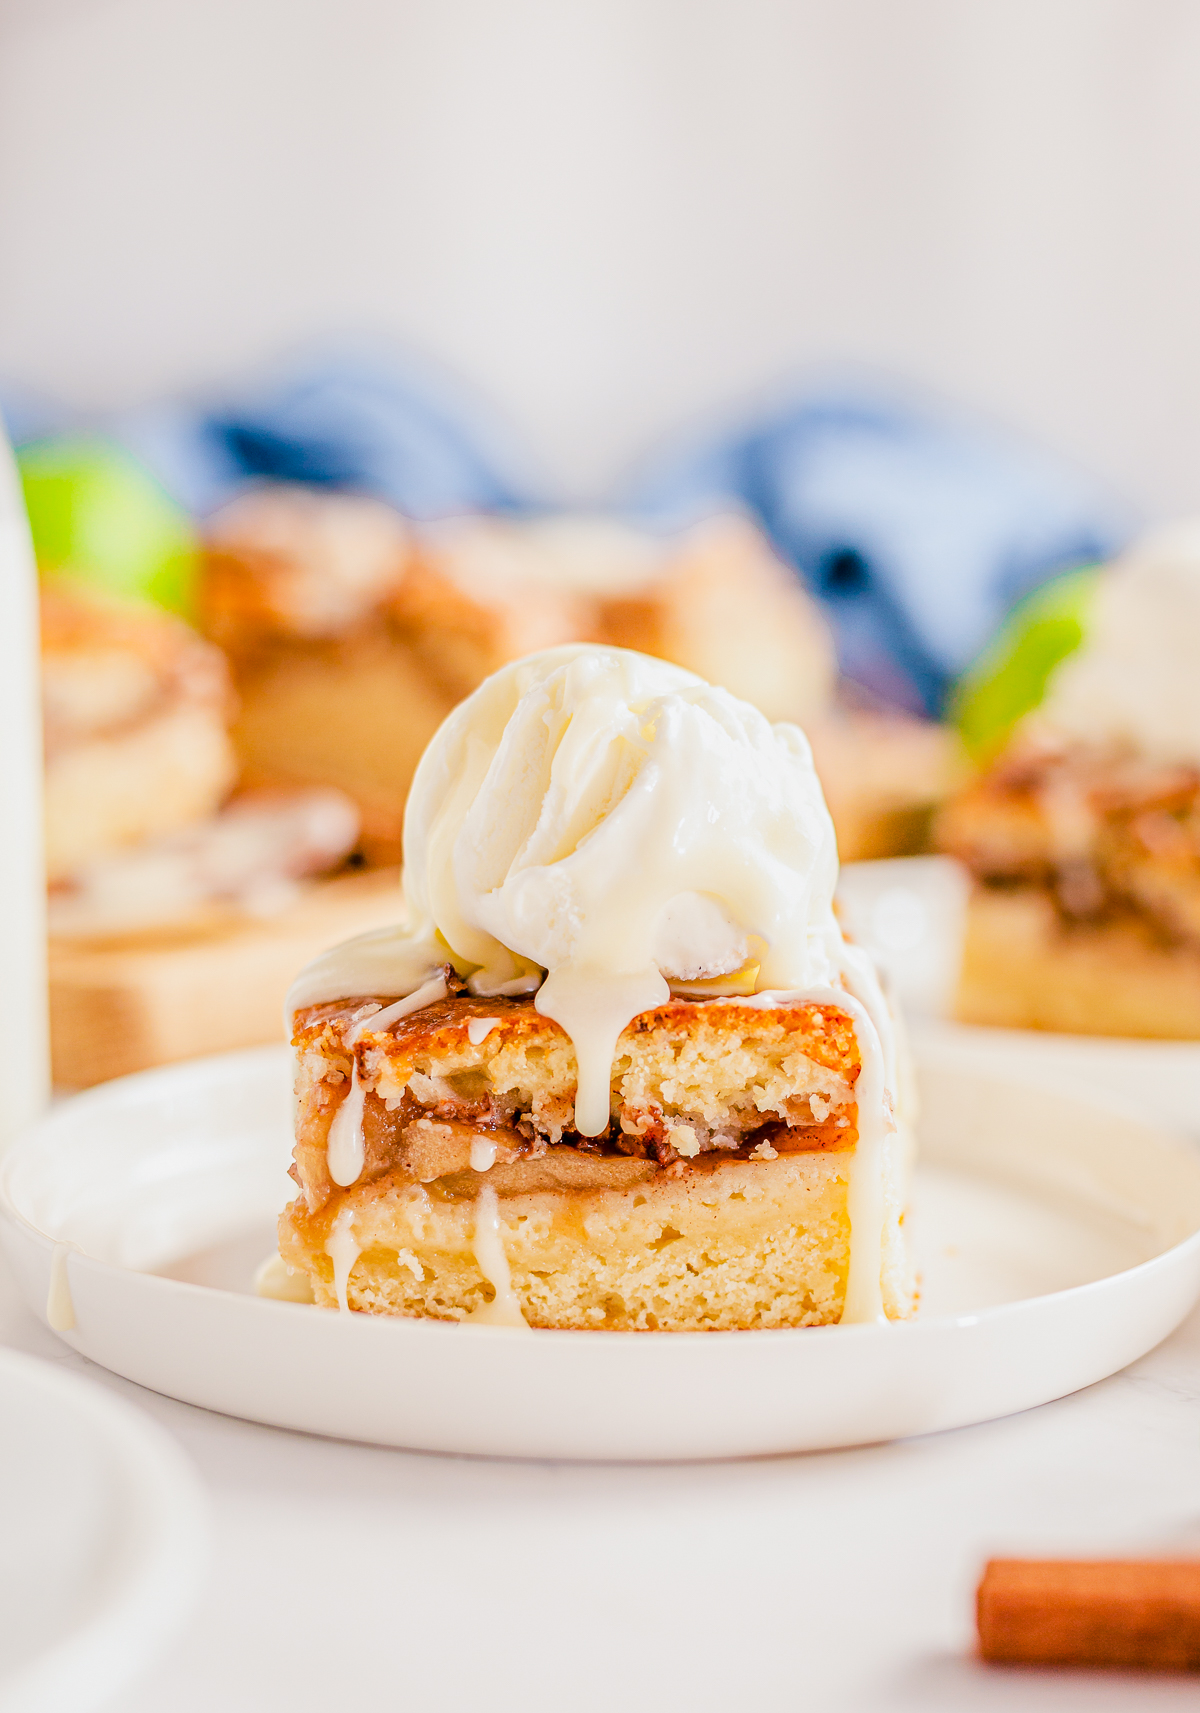 Apple Pie Bar on white plate topped with ice cream.